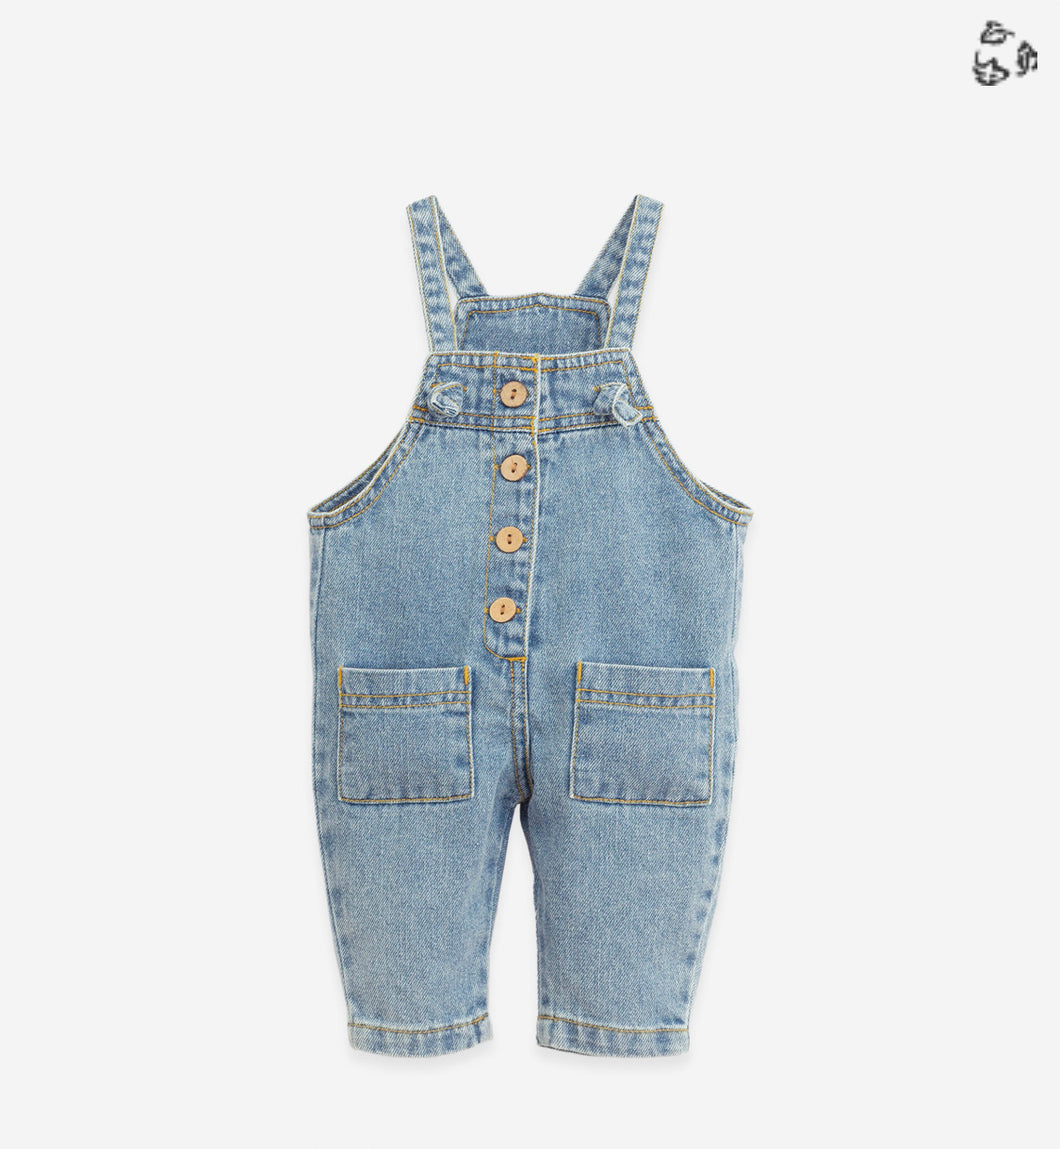 100% Cotton Denim Overalls